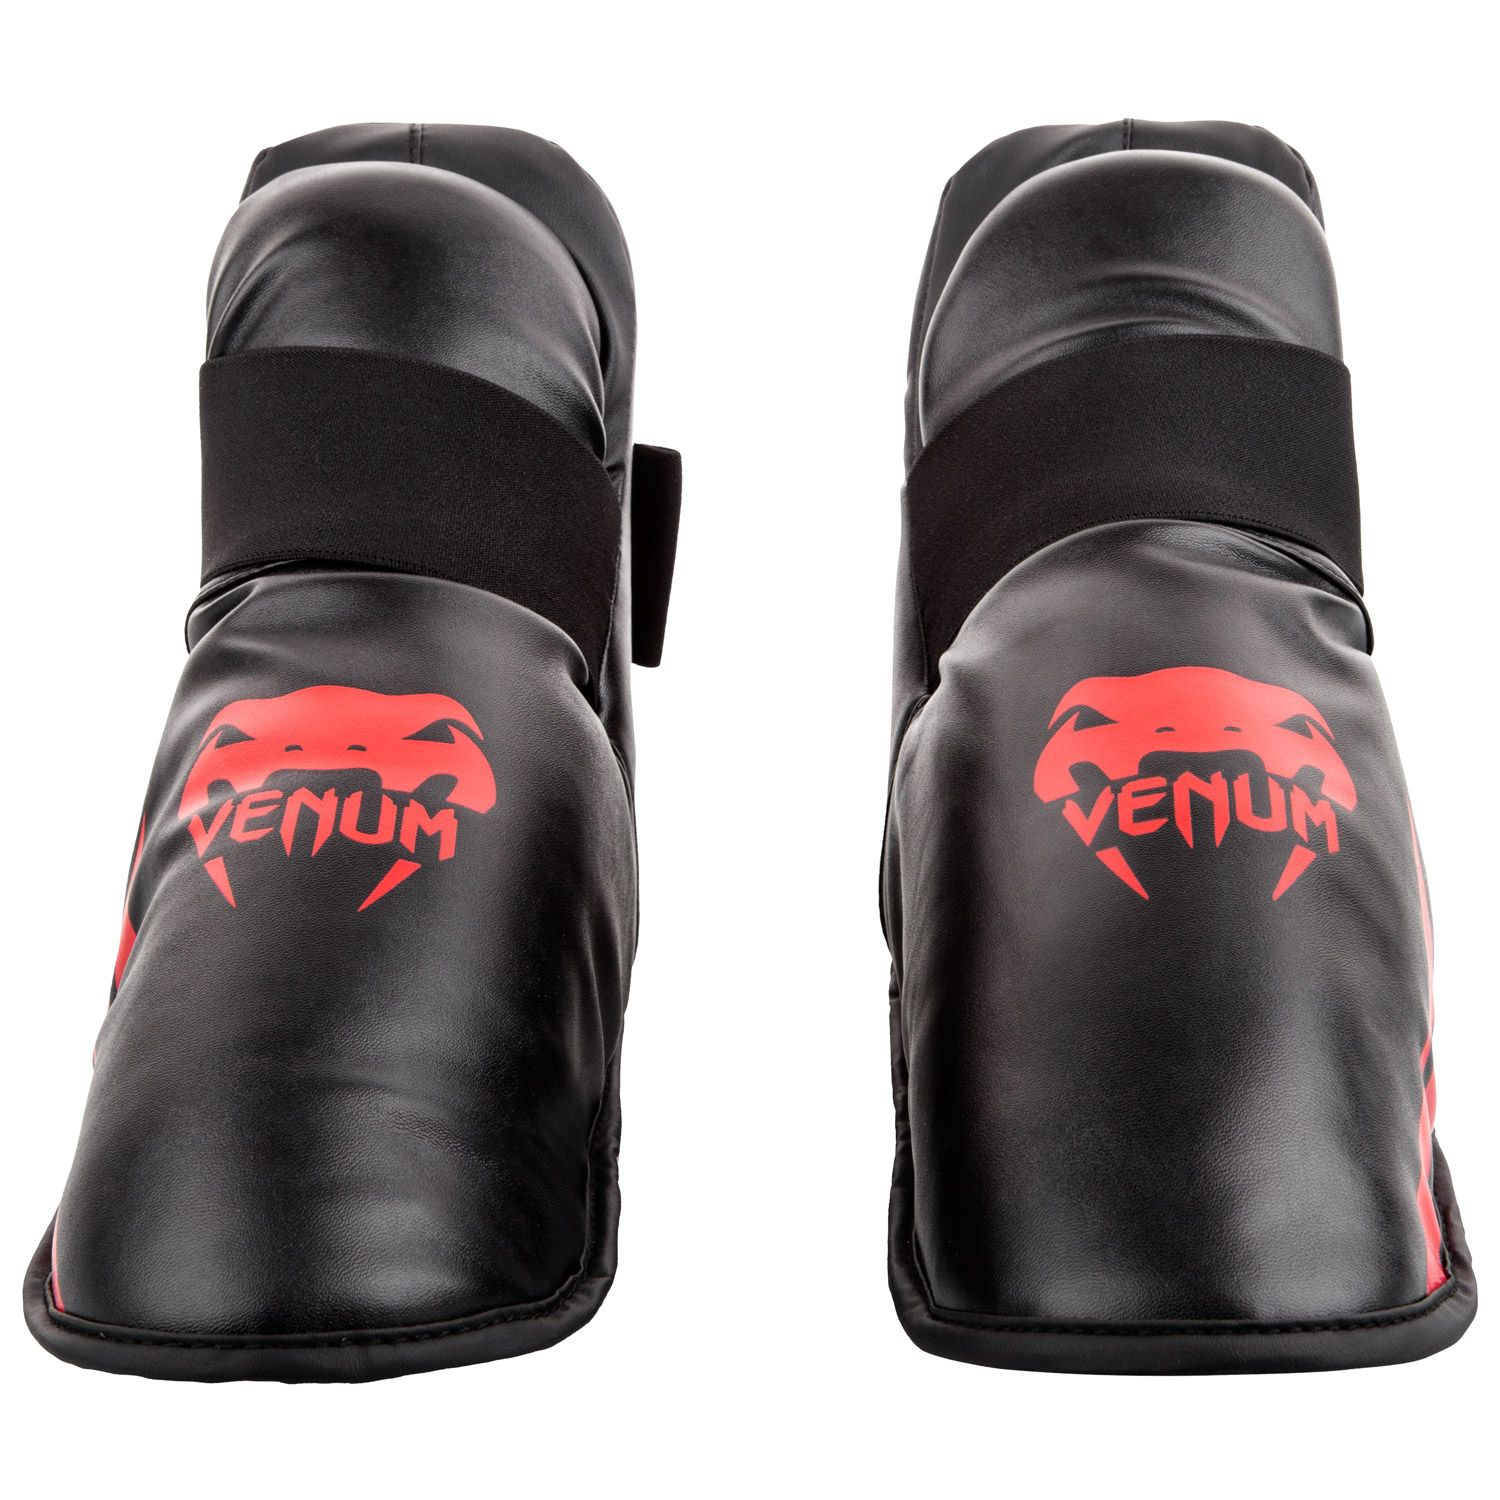 Venum Challenger Foot Gear - Black/Red